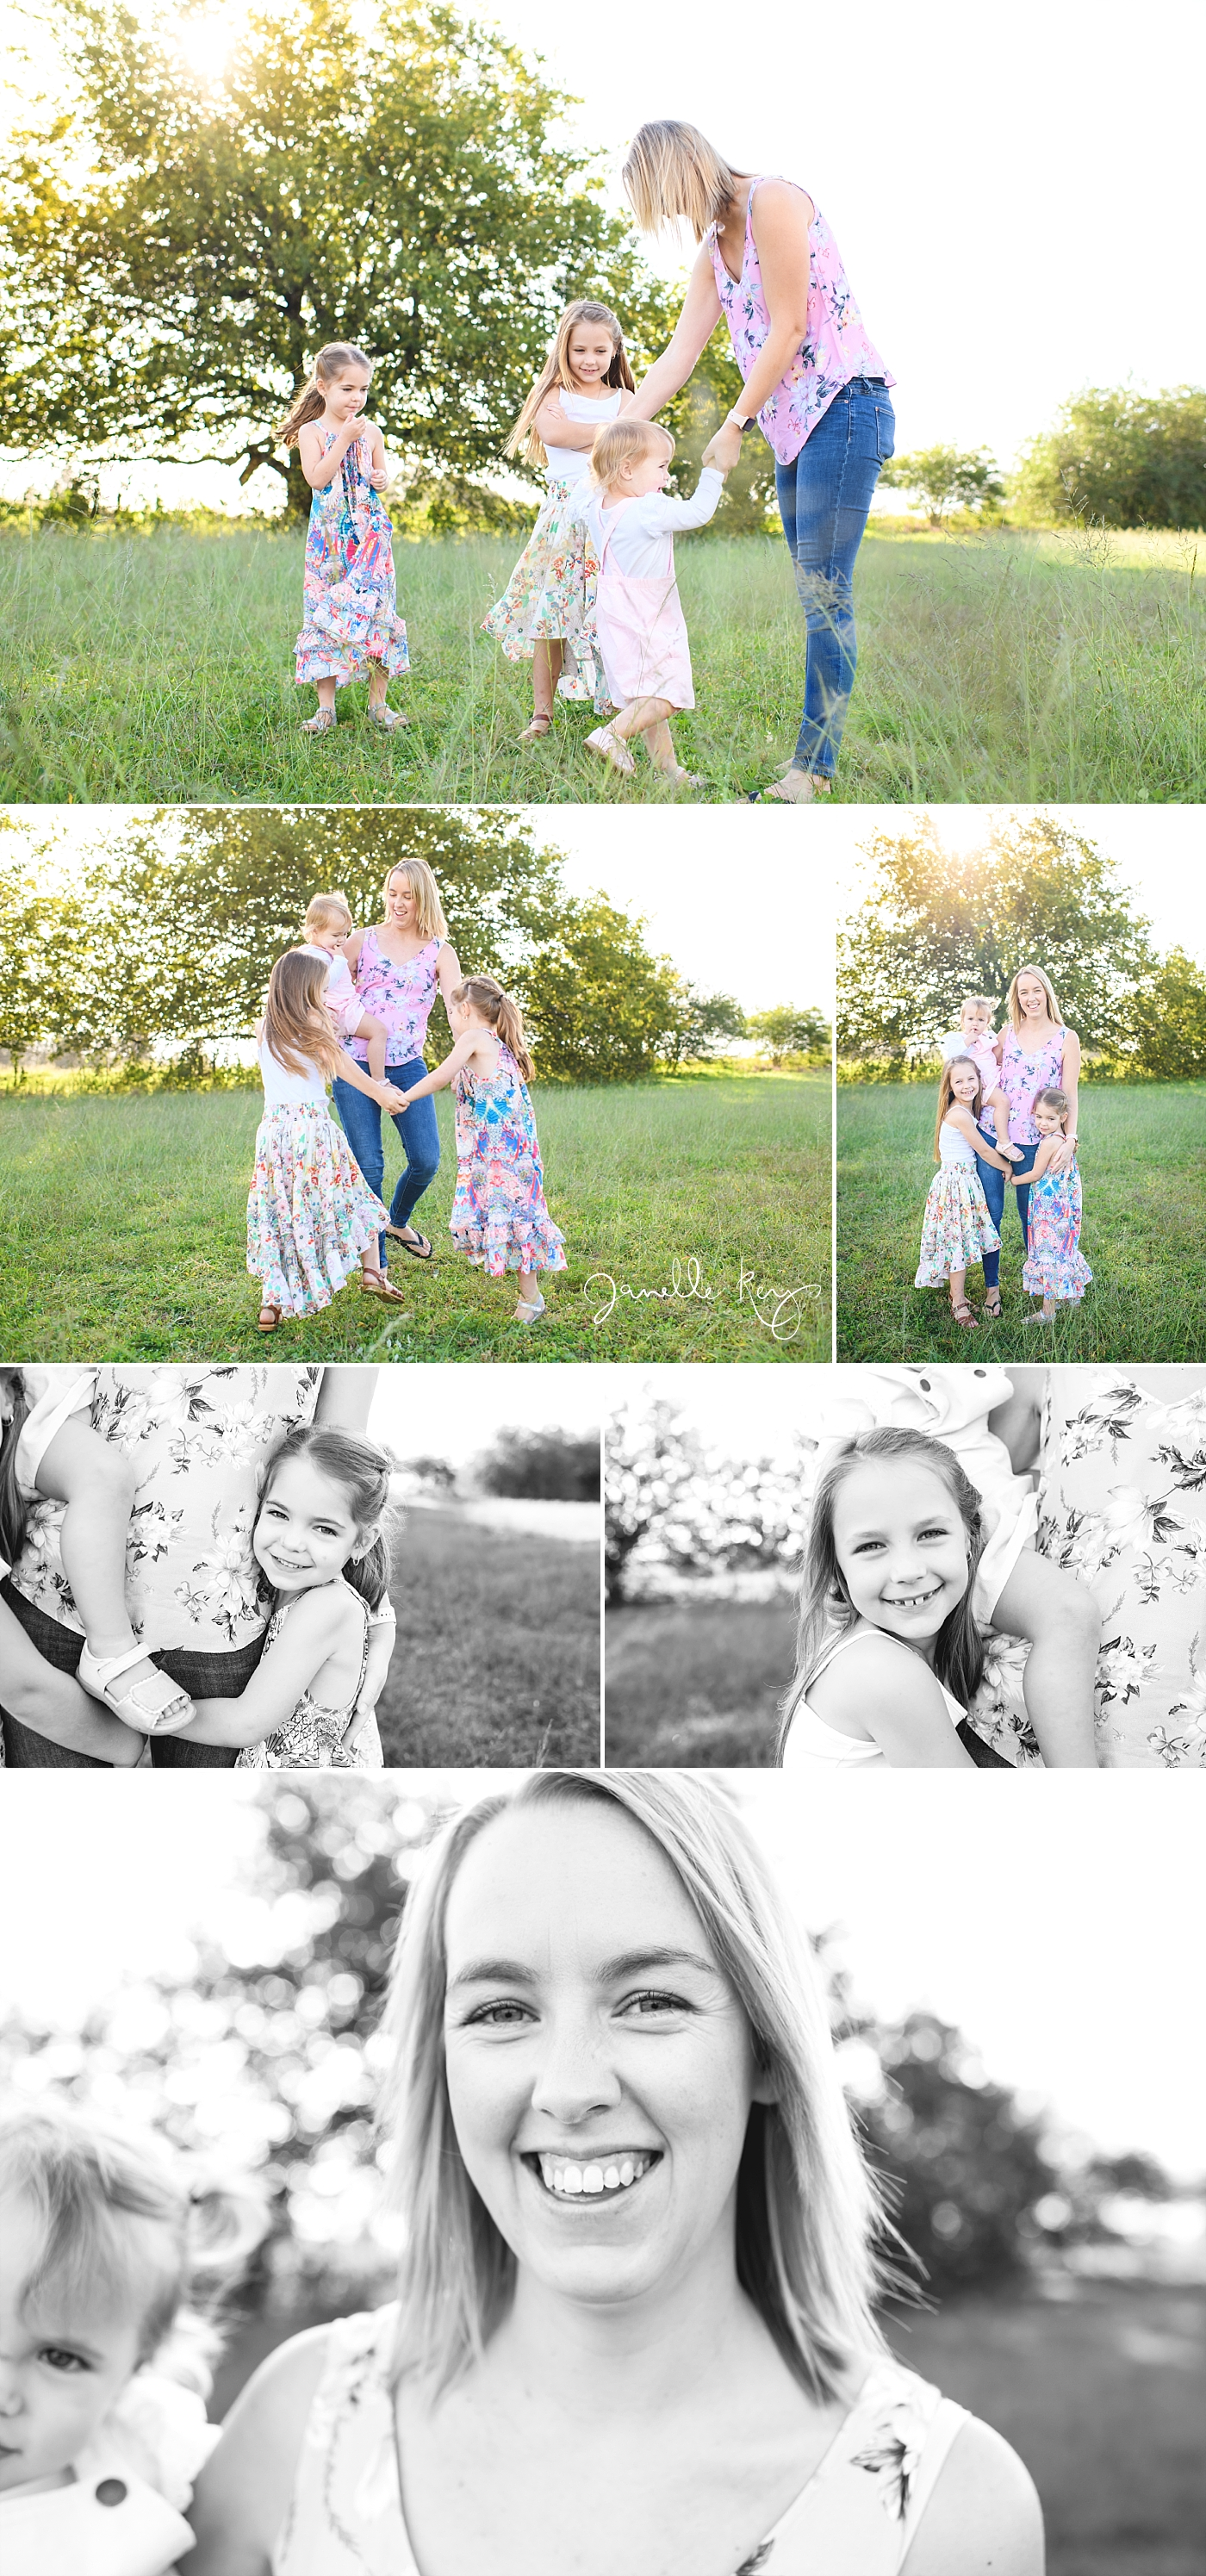 mothers-day-photos-1.jpg